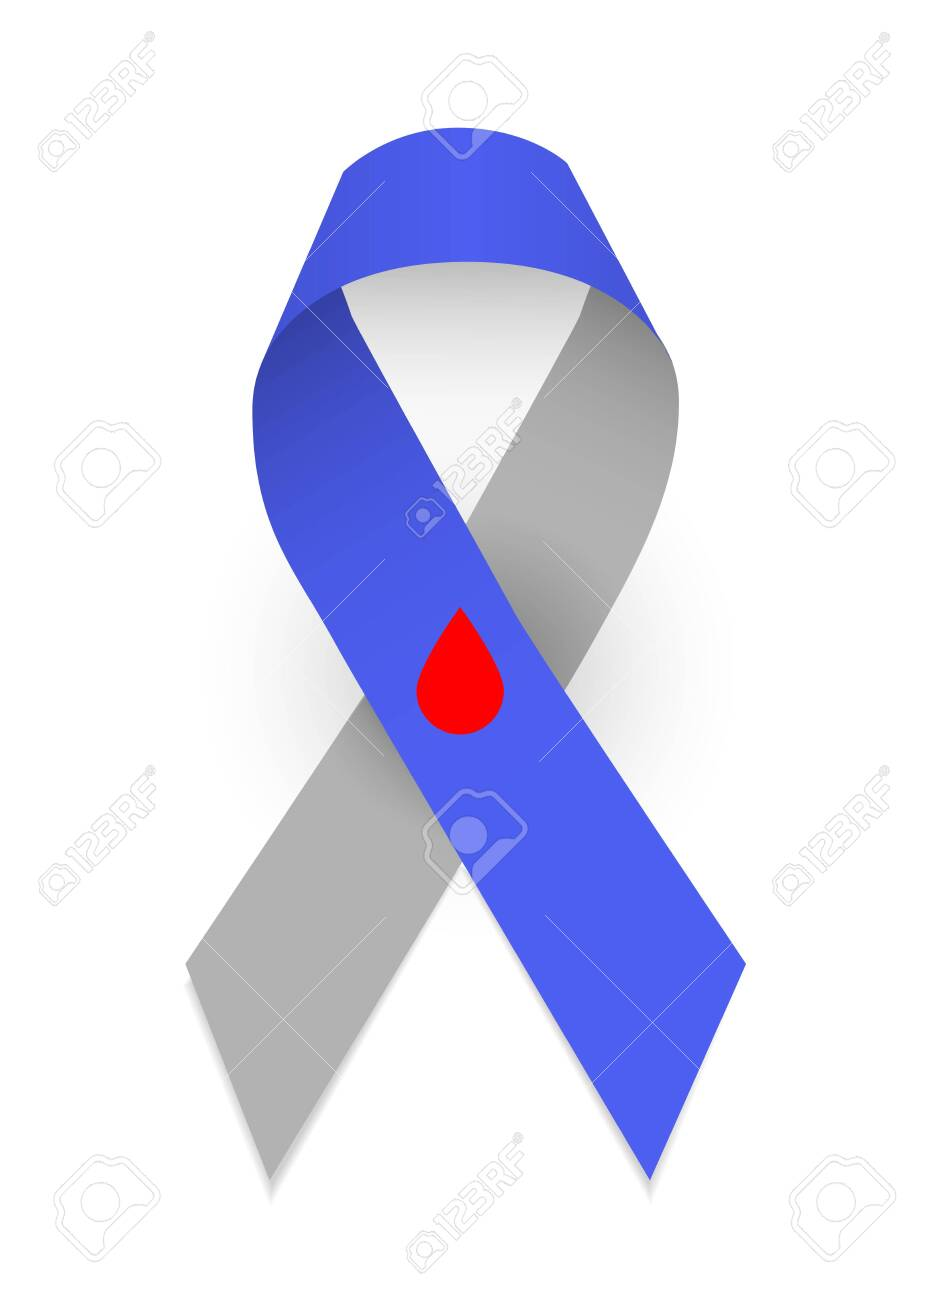 Diabetes Awareness Ribbon : diabetes, awareness, ribbon, Colorful, Satin, Ribbon, Symbol, Diabetes, Awareness..., Royalty, Cliparts,, Vectors,, Stock, Illustration., Image, 138634347.